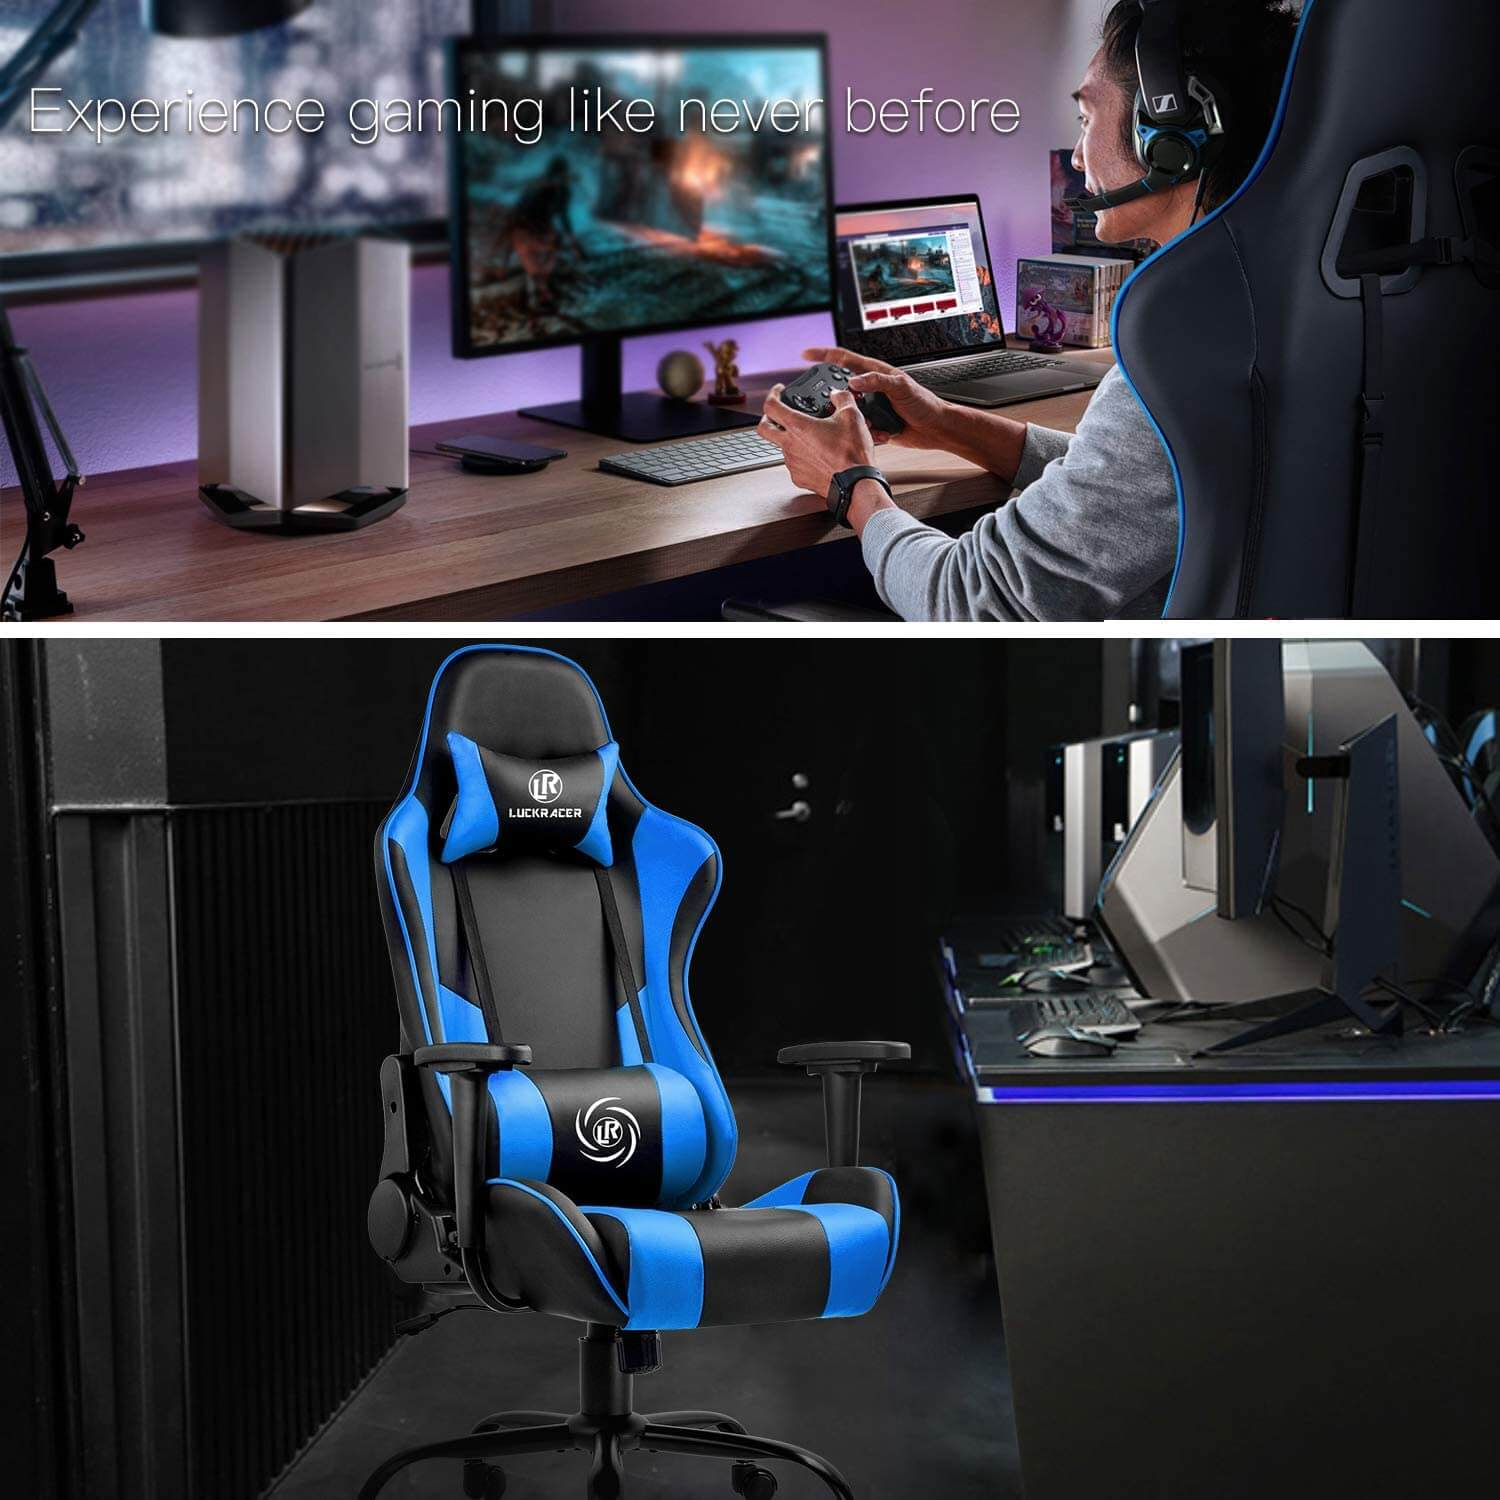 luckracer chair with 360 Degree Swivel for 100 GBP